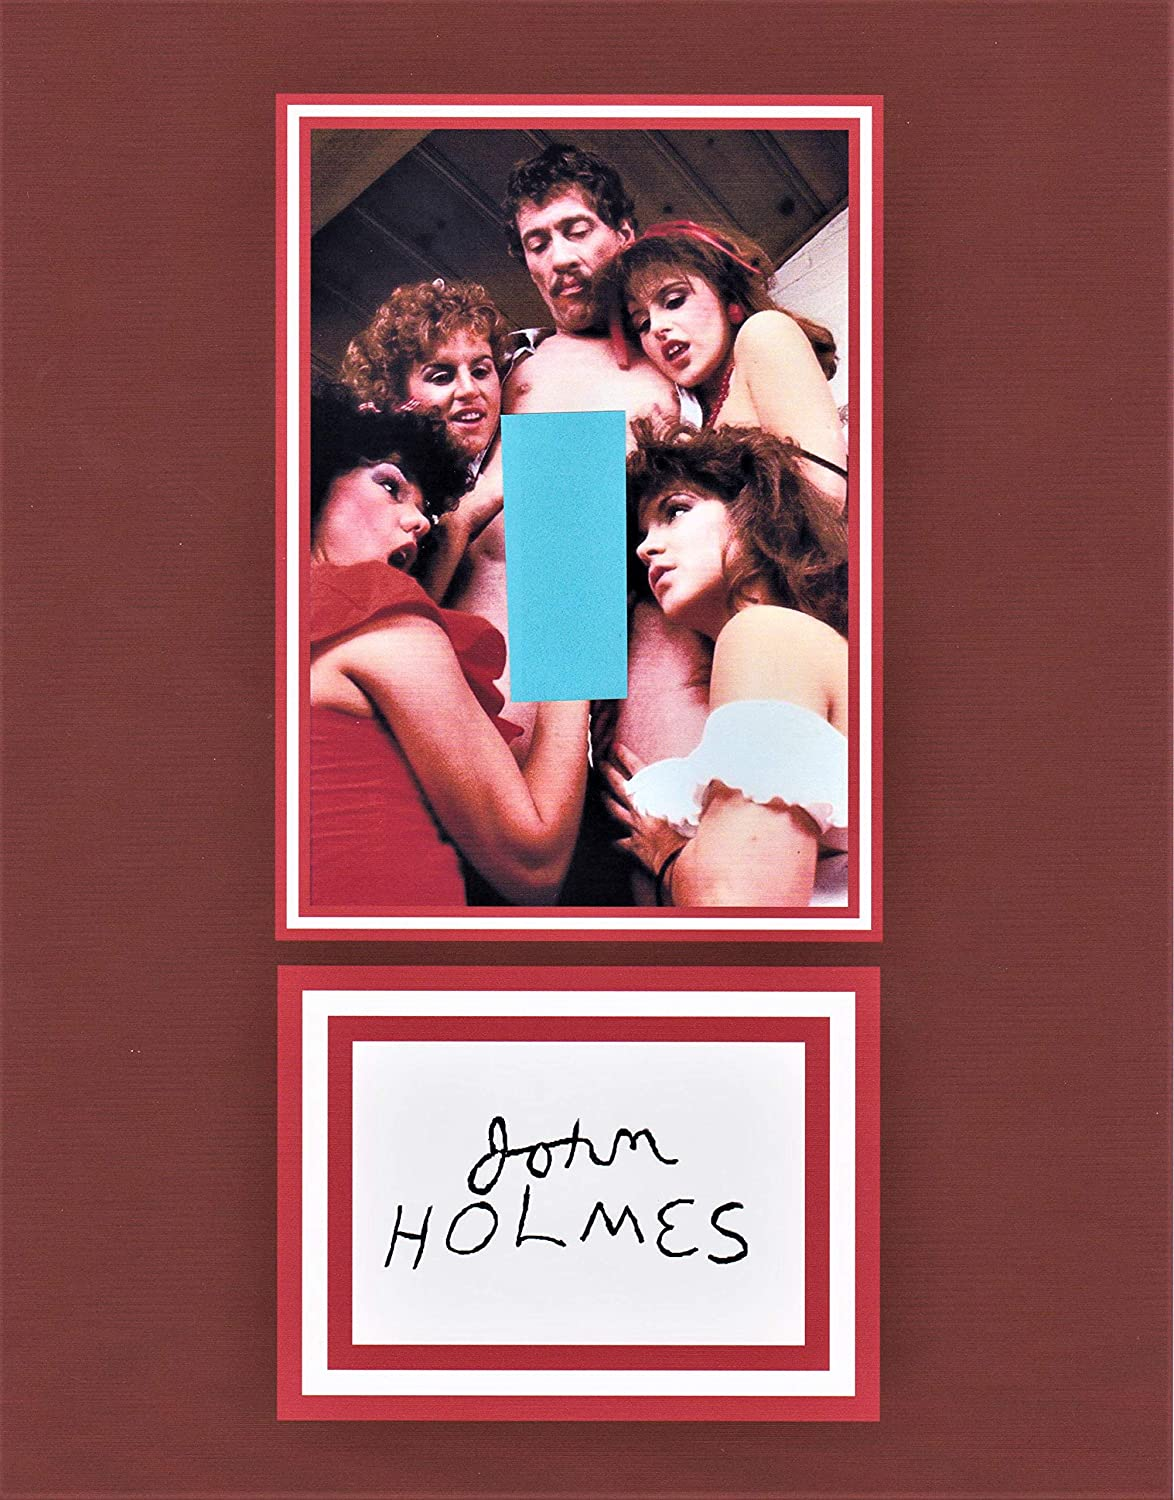 JOHN HOLMES, NUDE ERECTION 8 X 10 AUTOGRAPH ON GLOSSY PHOTO PAPER